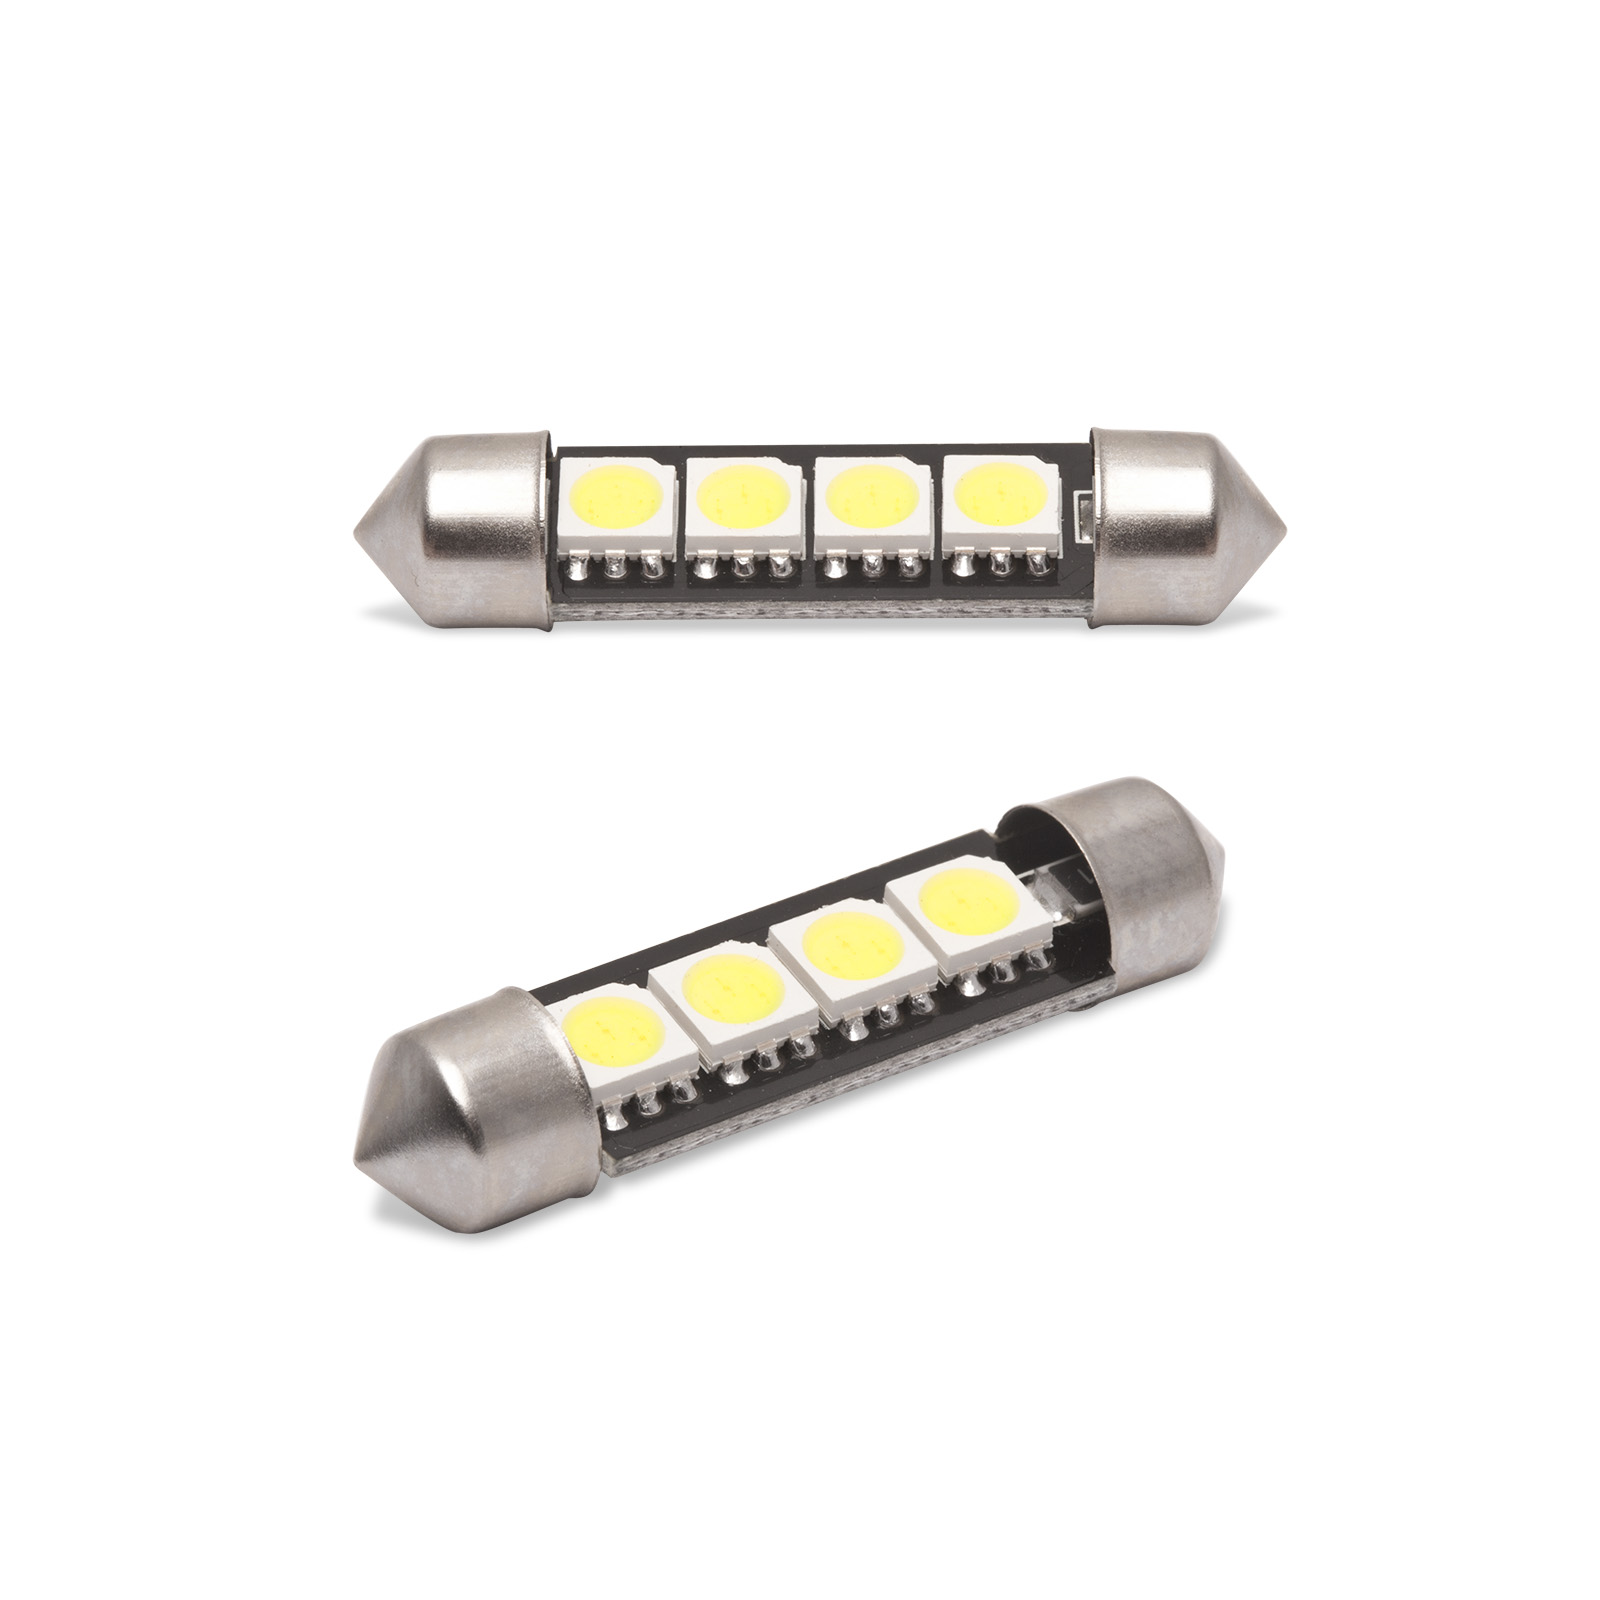 LED izzó CAN106 Canbus 3W SOF39 mm 2 db - 50957